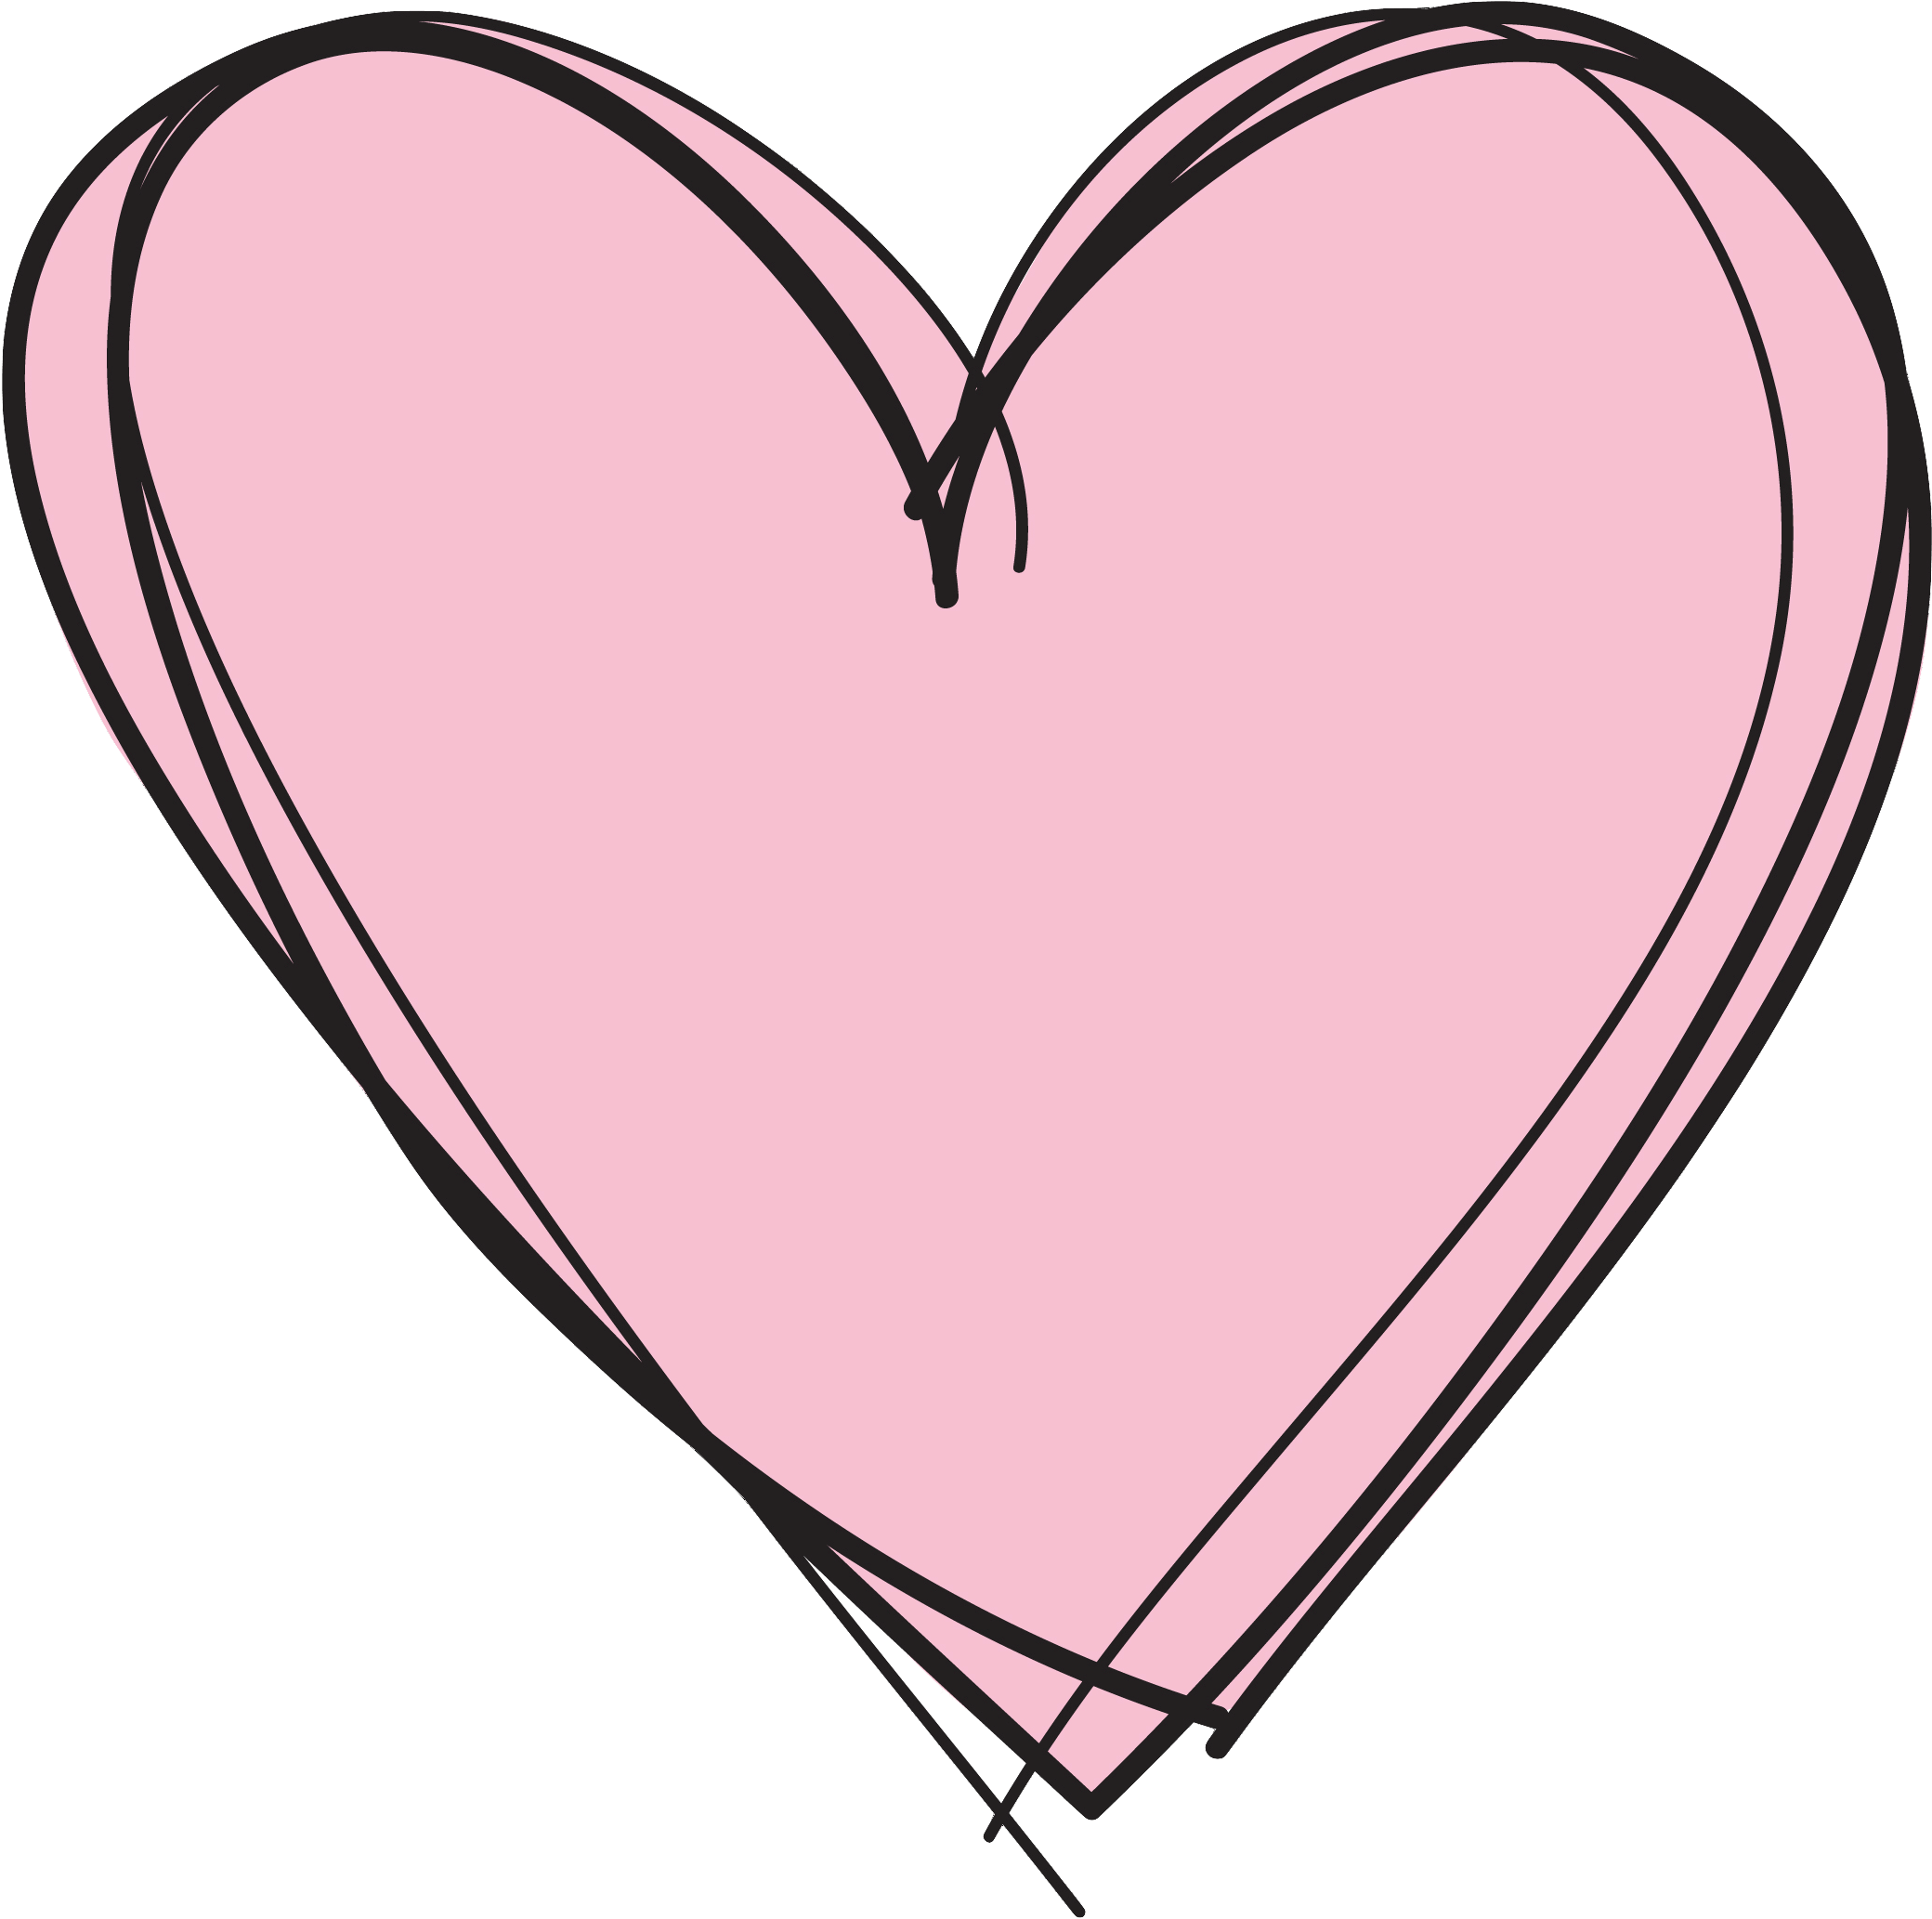 Pink Heart Clipart No Background Cute Transparent Background